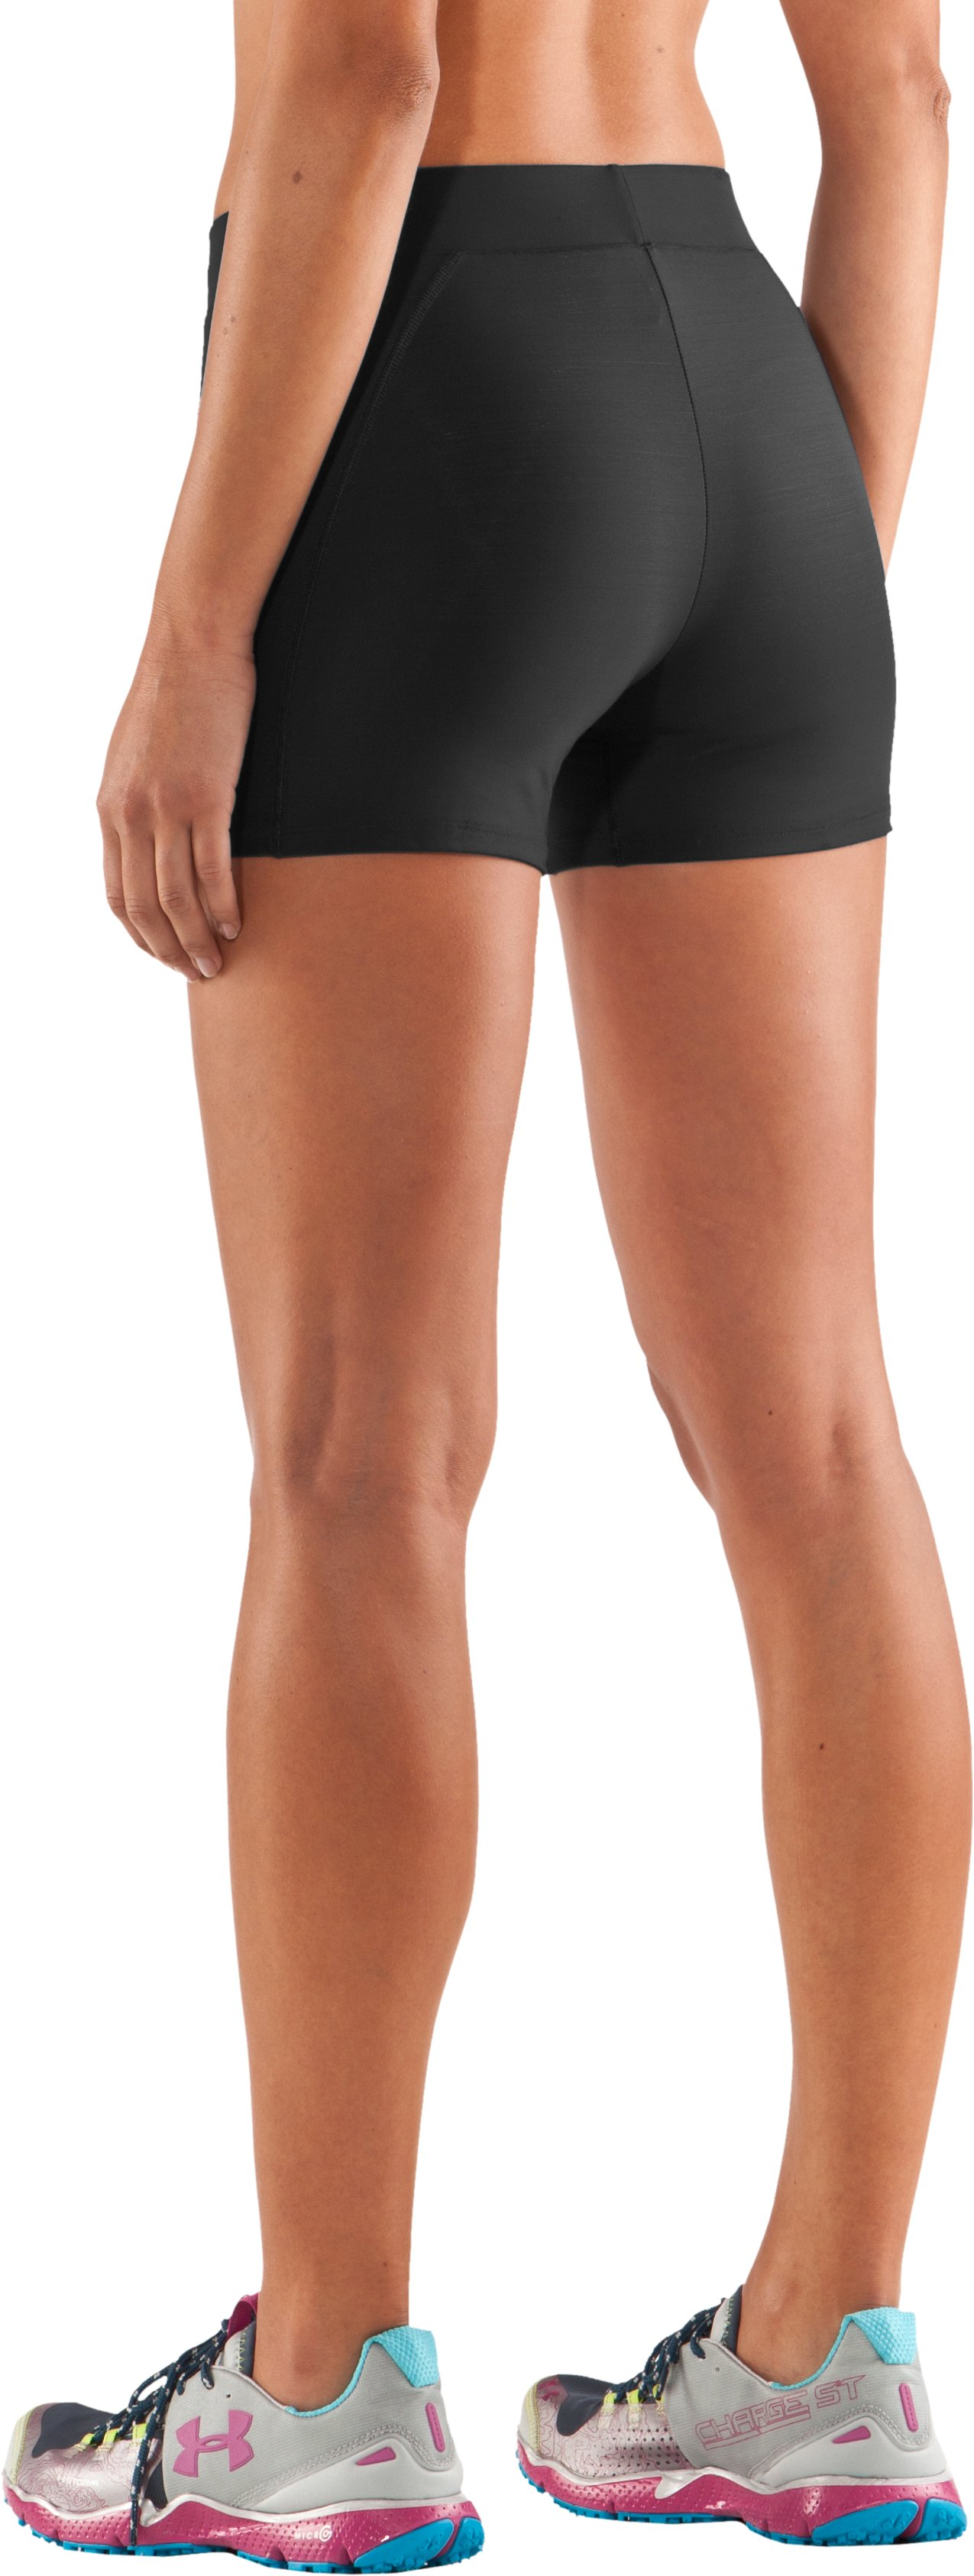 "Women's Ultra 2"" Compression Shorts, Black"